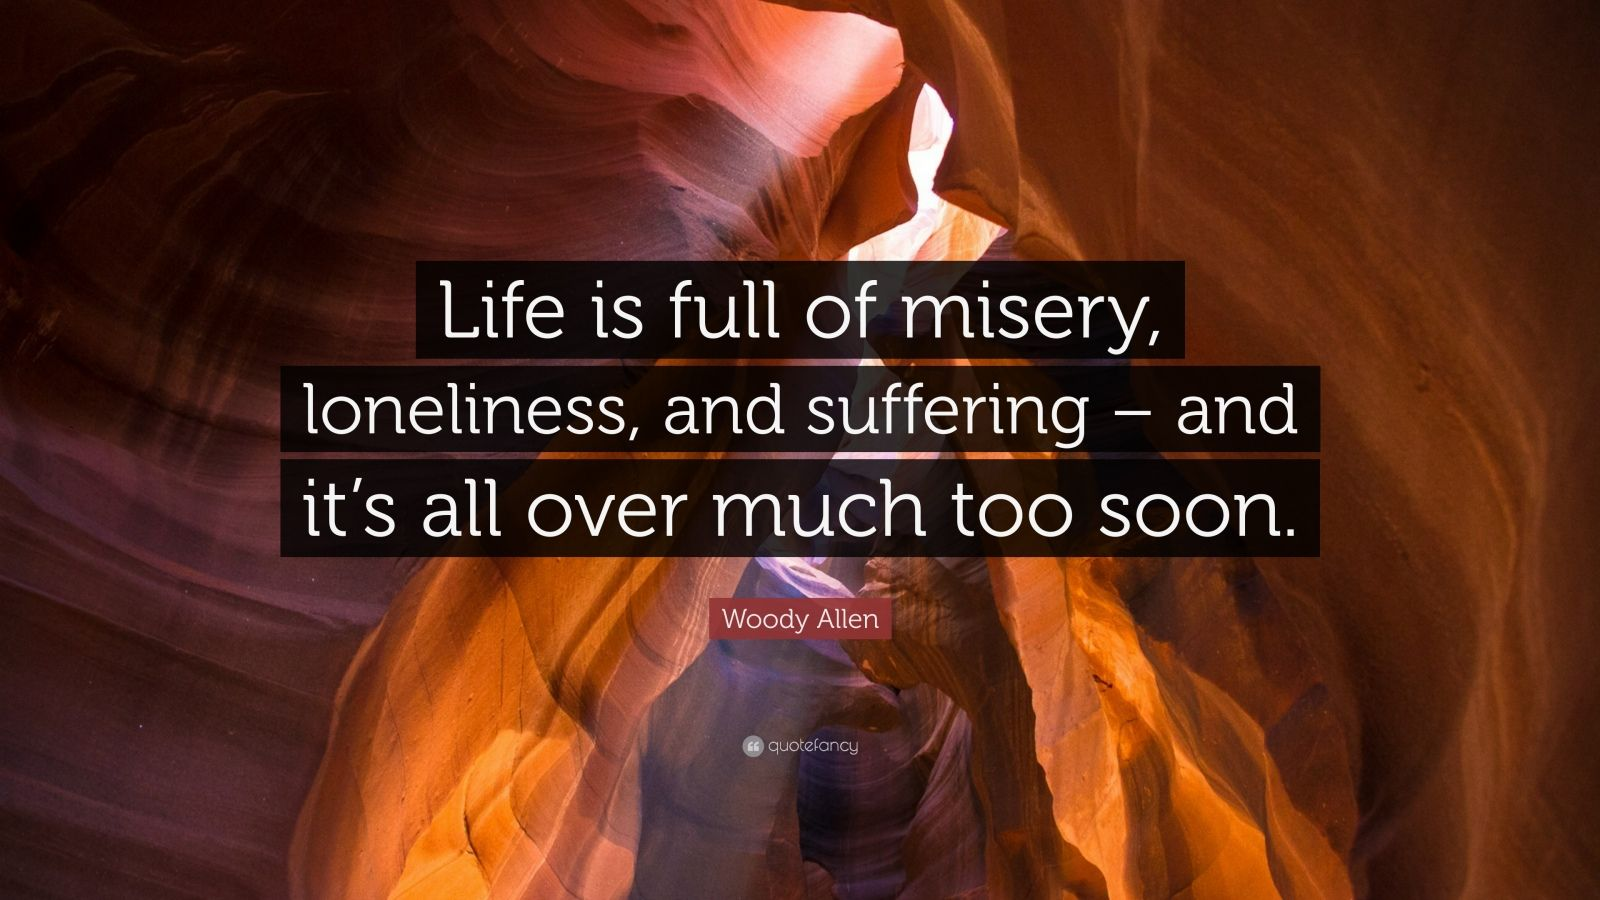 """Woody Allen Quote: """"Life is full of misery, loneliness, and suffering – and it's all over much too soon."""""""